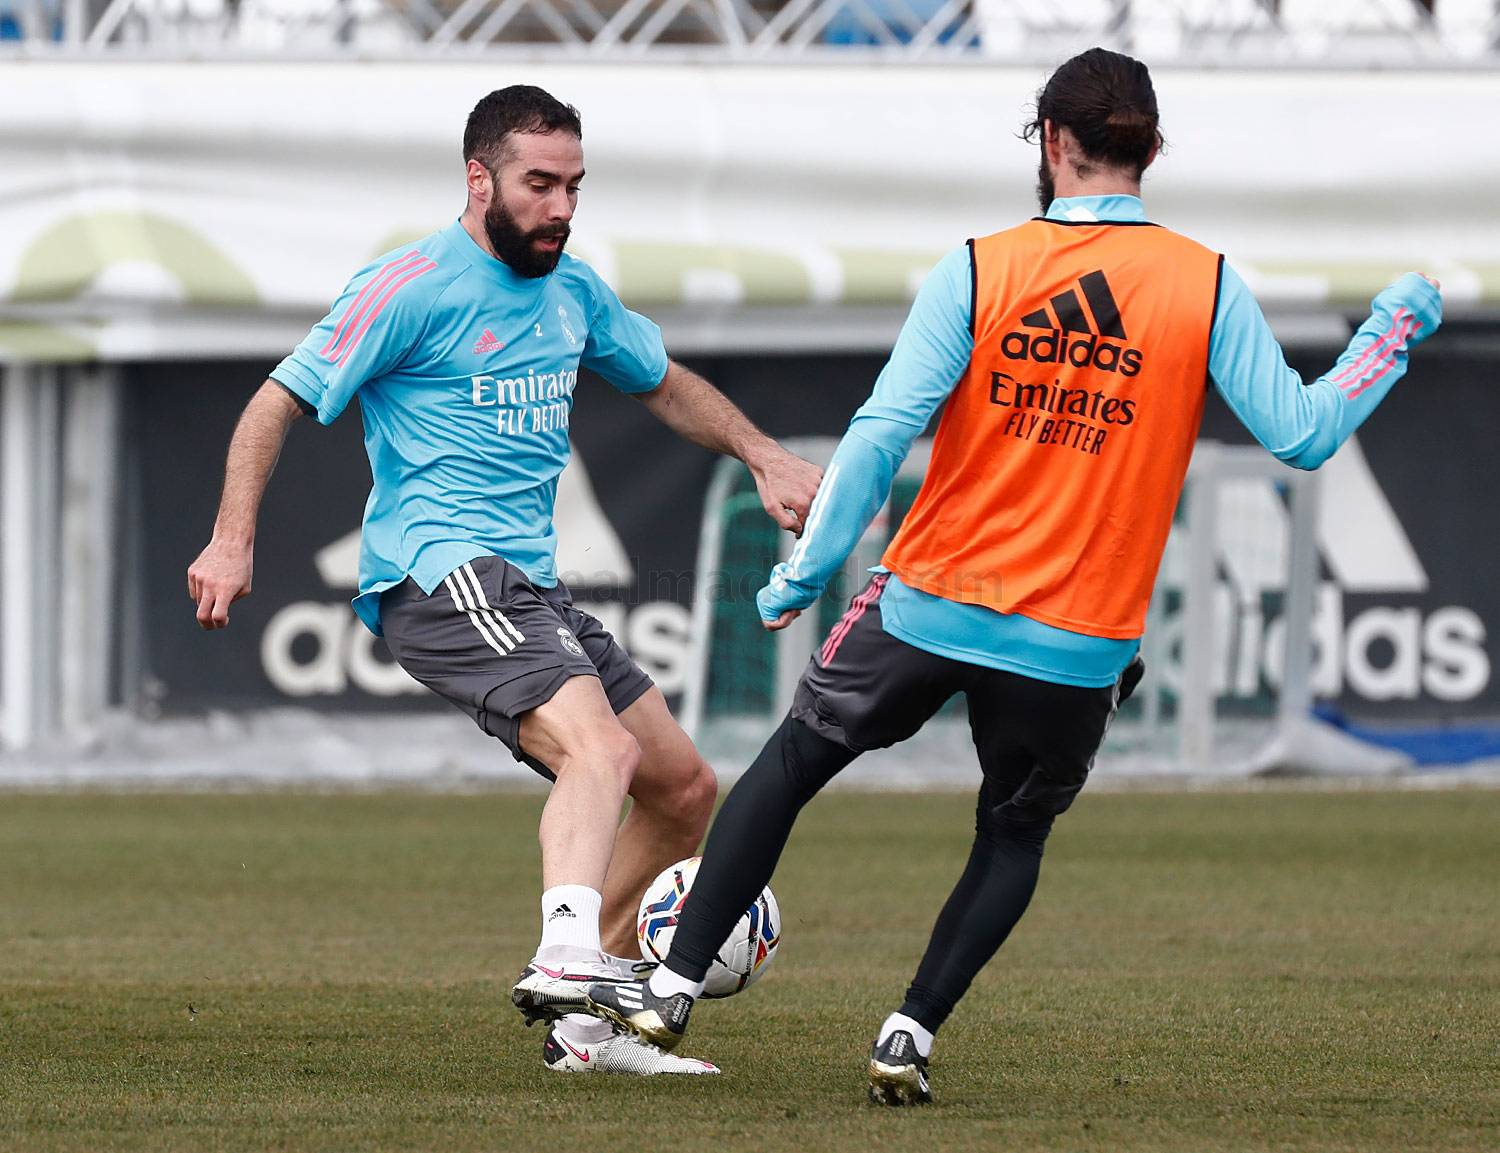 Entrenamiento del Real Madrid  - 03-03-2021